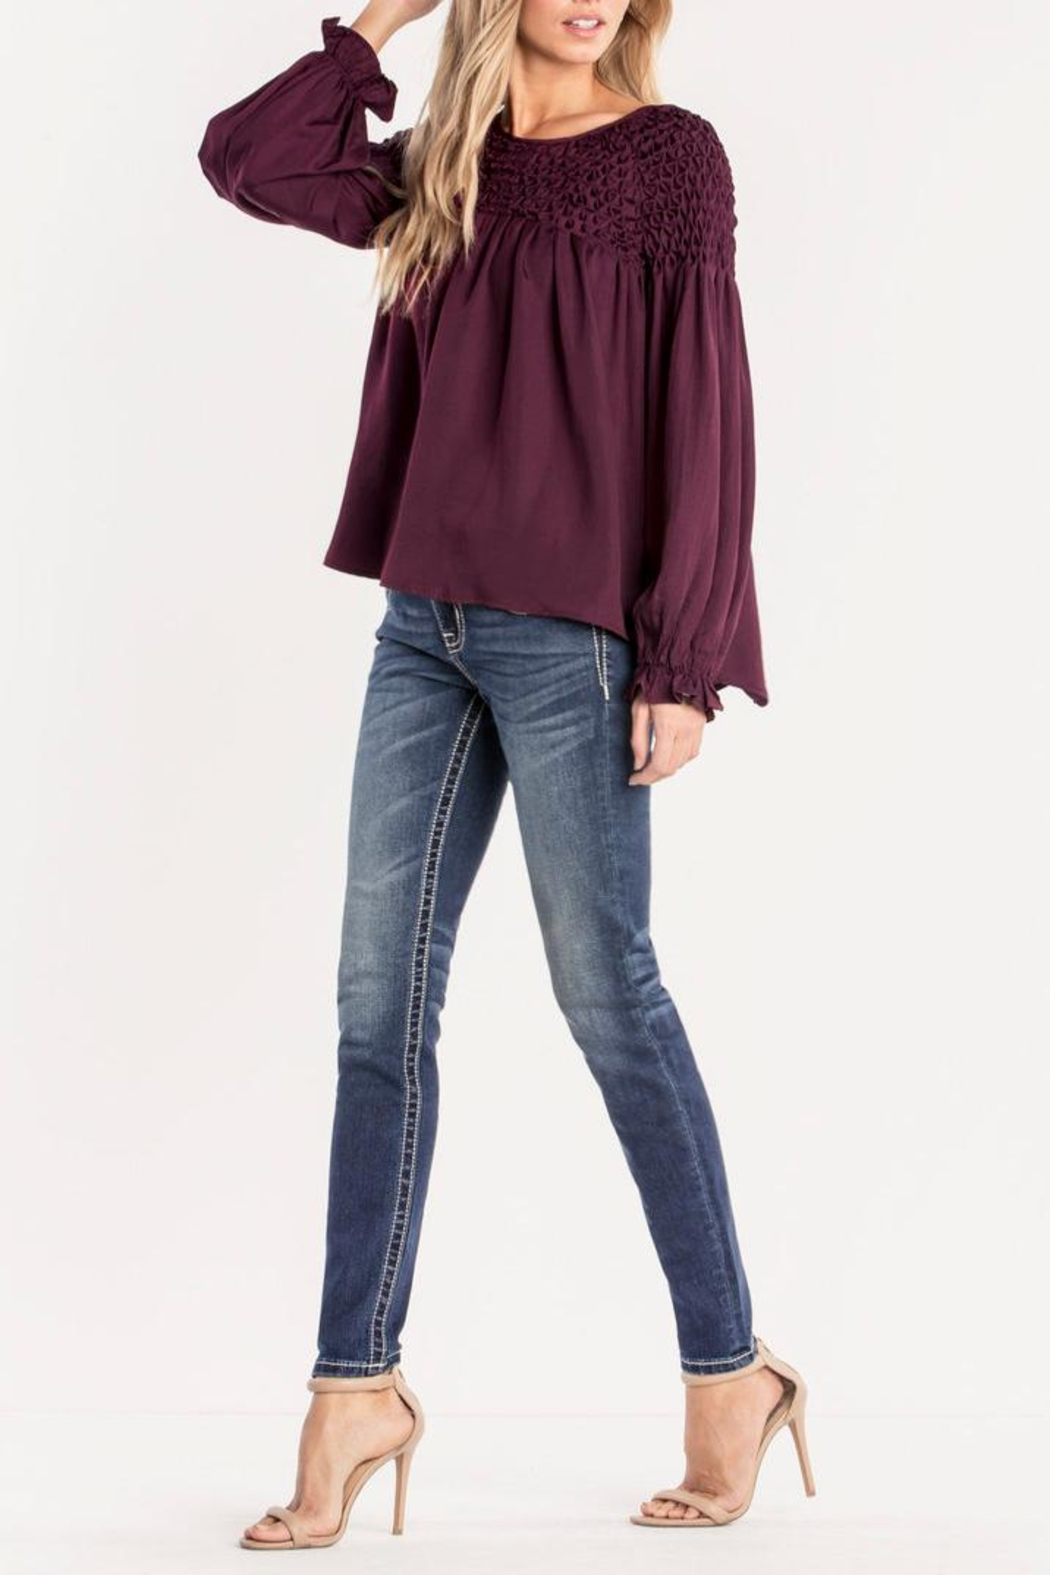 Miss Me Plum Ruffle Top - Back Cropped Image